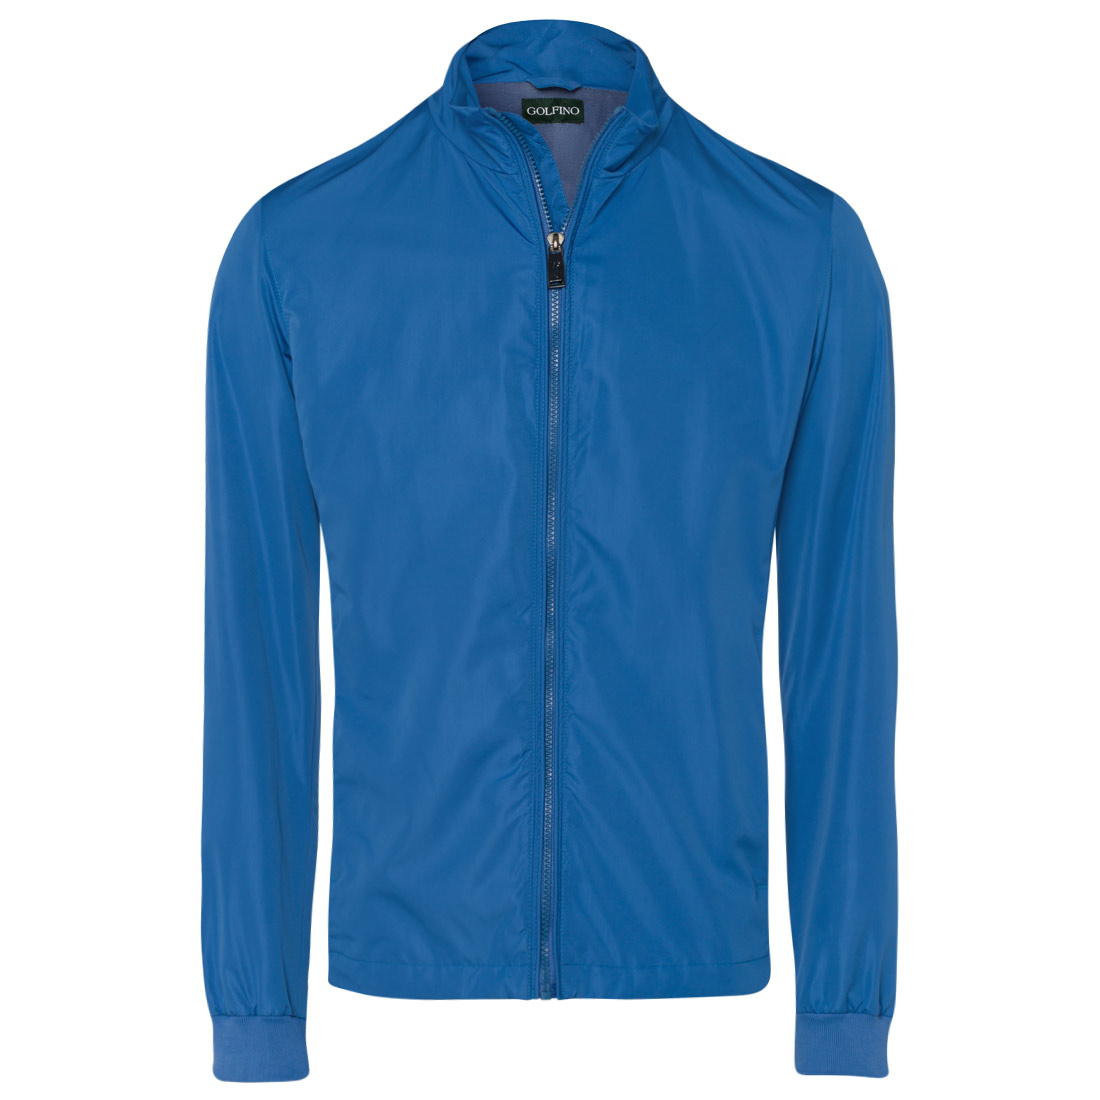 Men's functional golf jacket